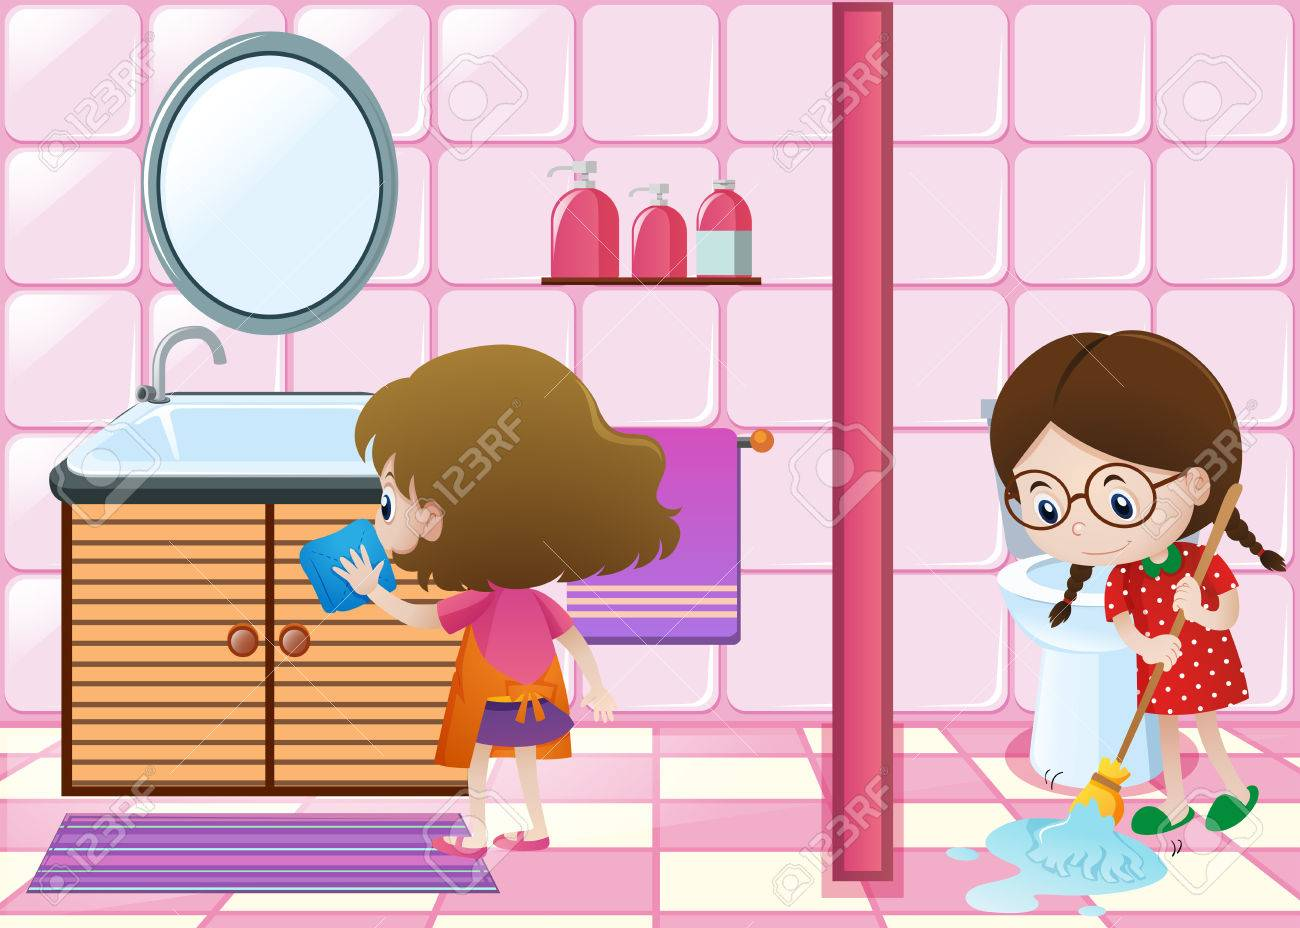 Two kids cleaning bathroom together » Clipart Station.